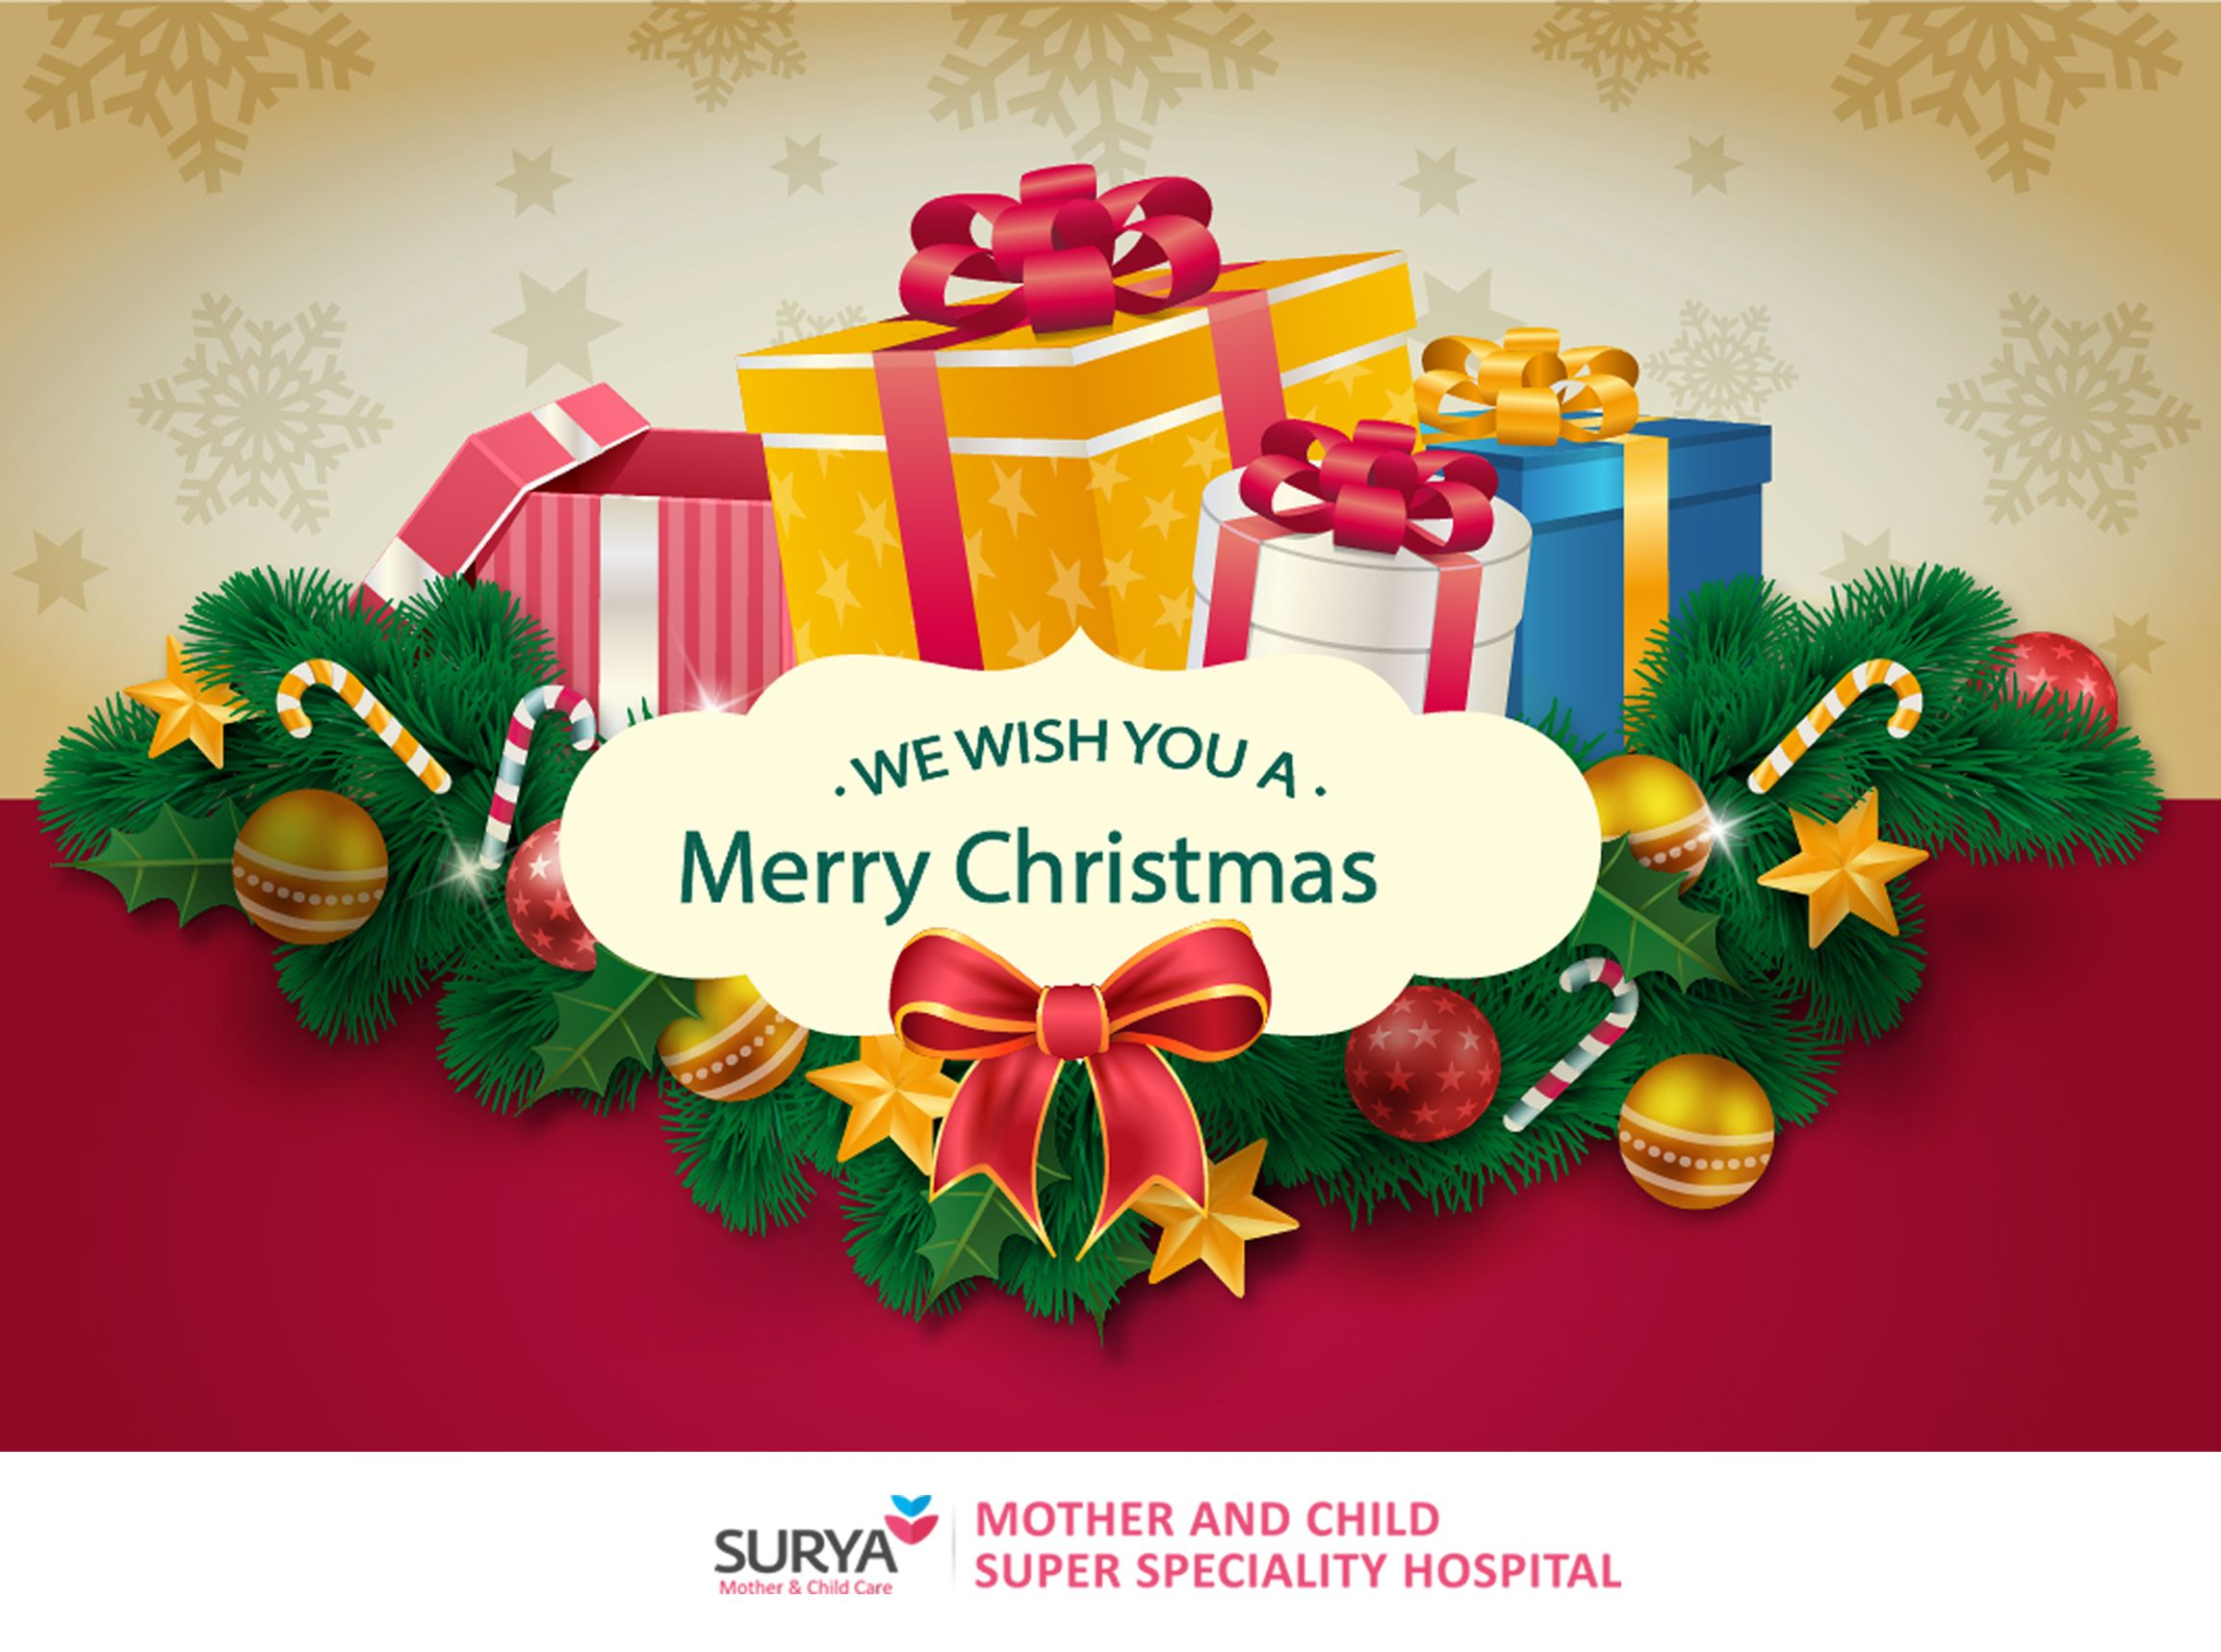 Surya Child Care Wishes You A Merry Christmas